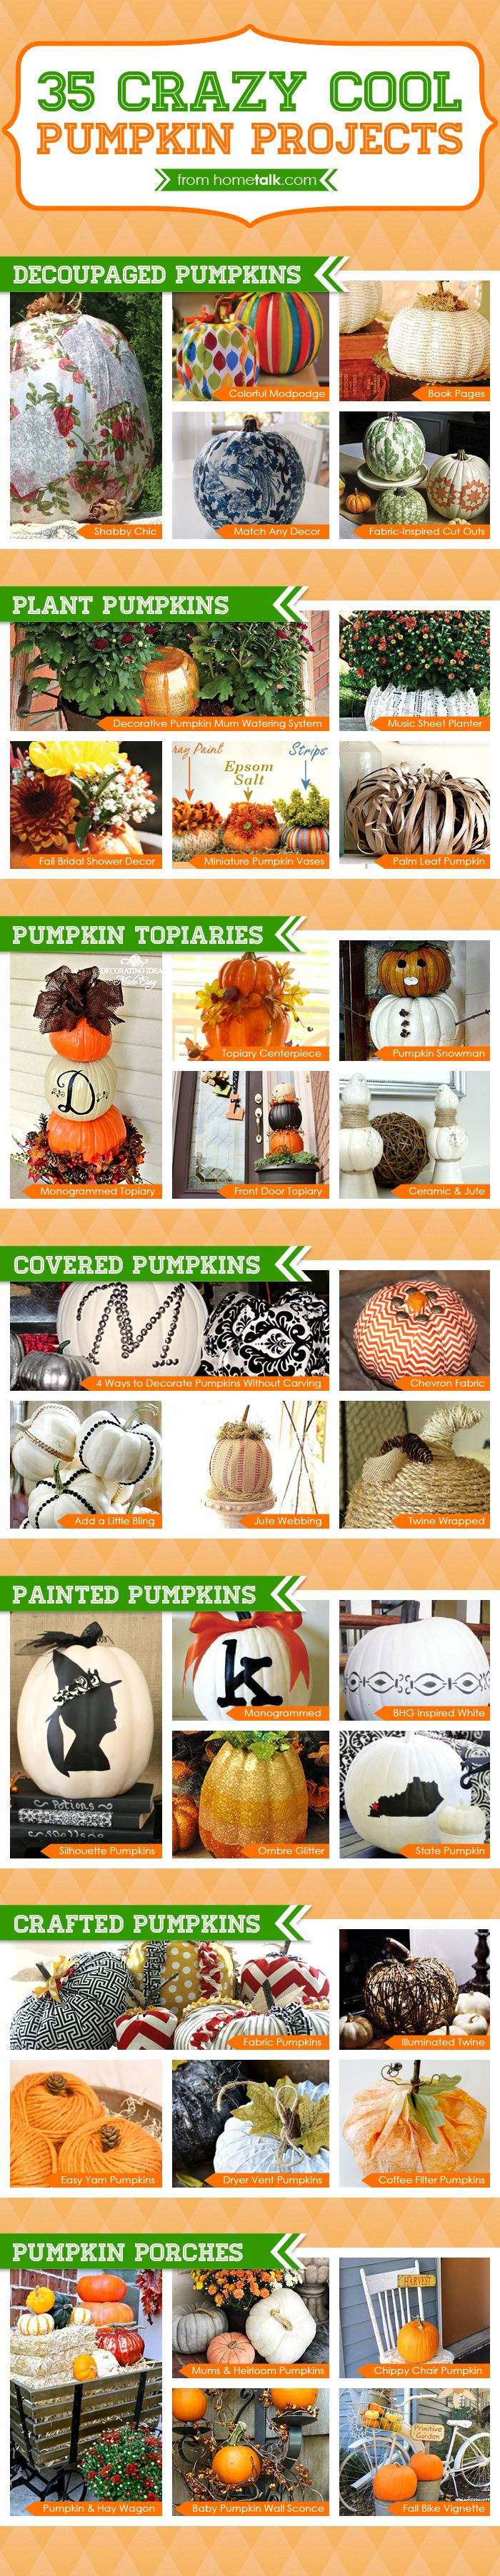 35+ crazy cool pumpkin ideas to try this fall